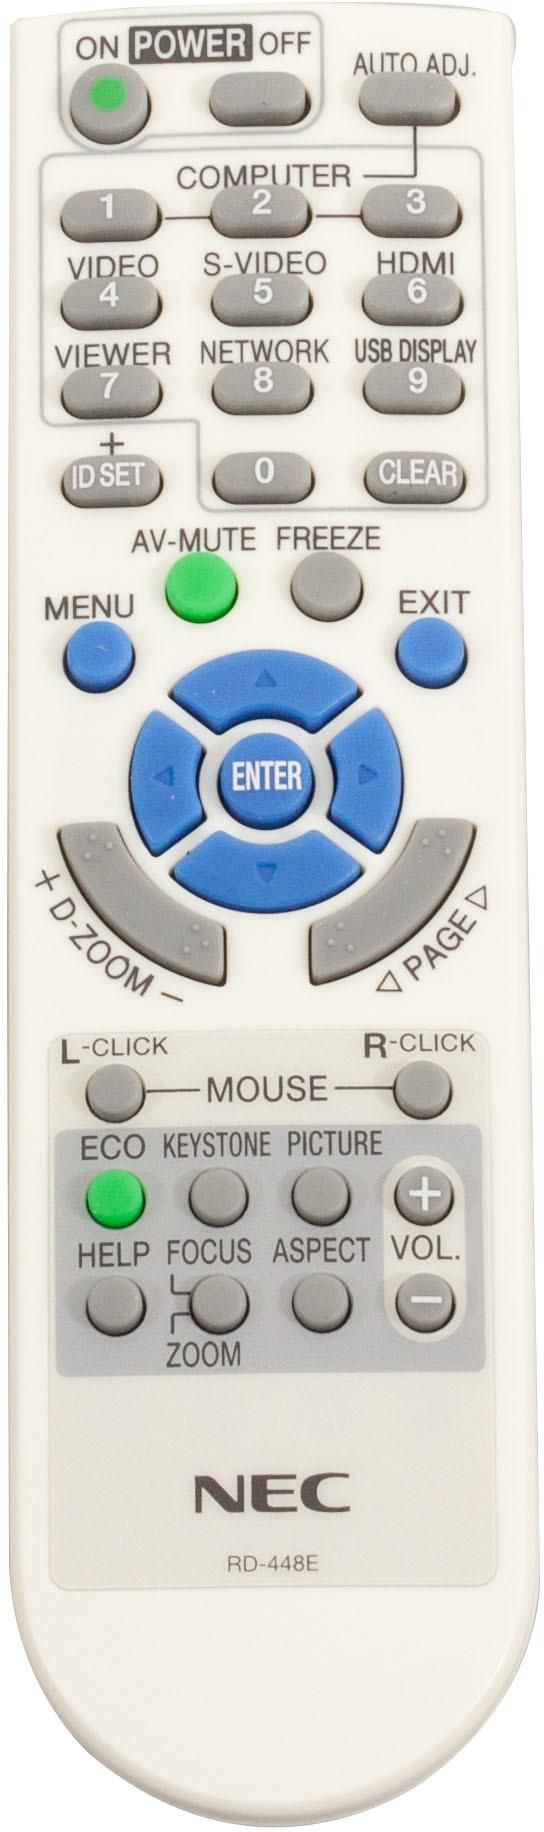 NEC Remote Controller RD-448E - Approx 1-3 working day lead.